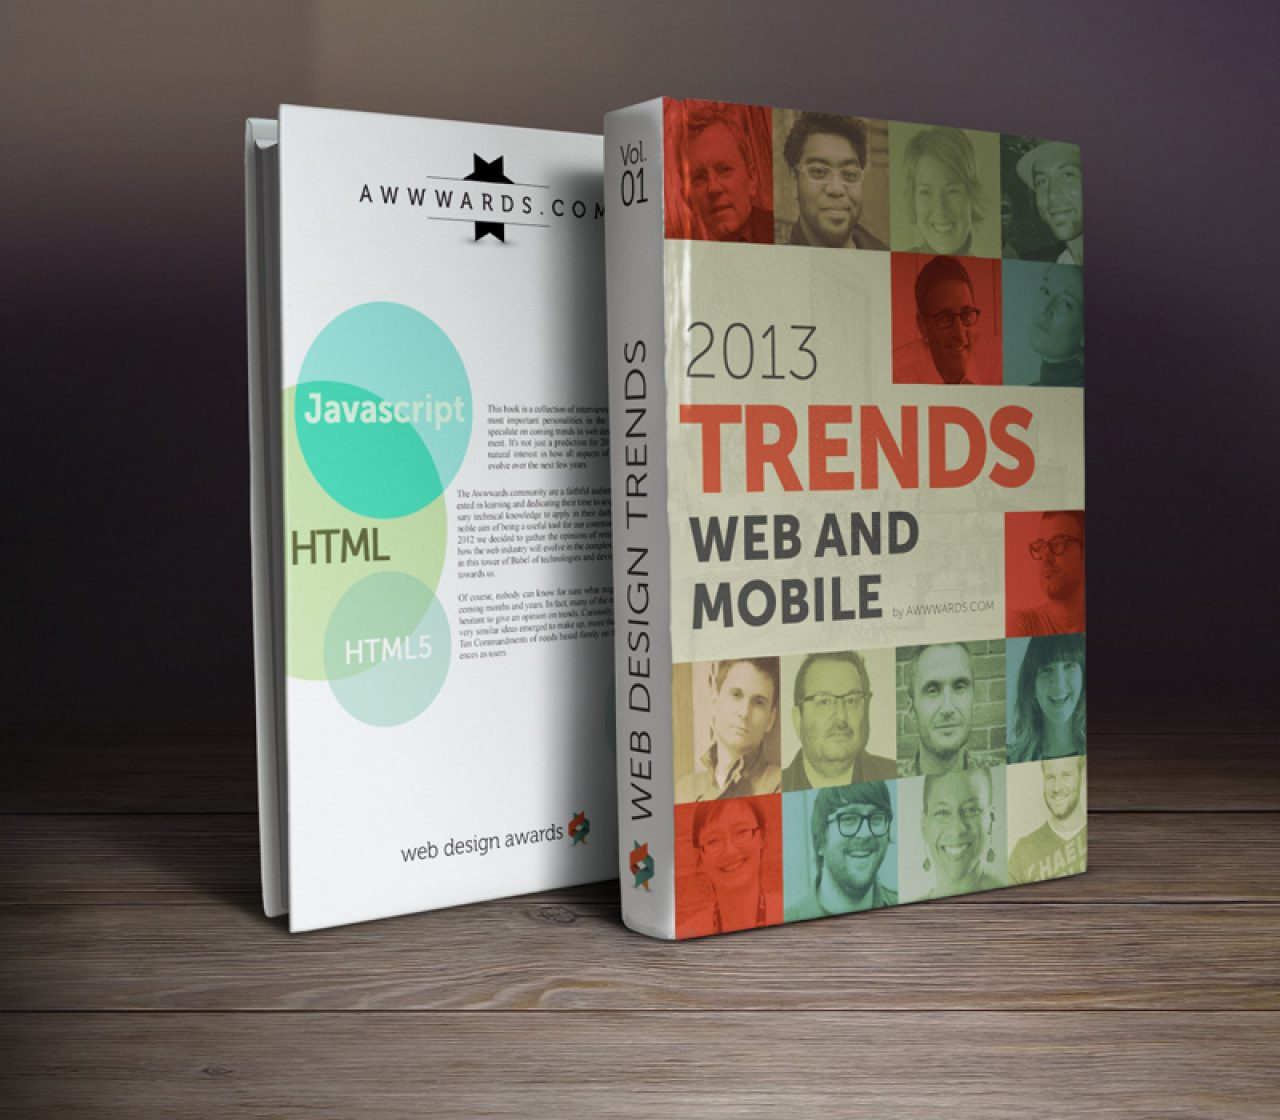 web-mobile-design-trends-2013-img-0.jpg.pagespeed.ce.Pei6-UAn0P